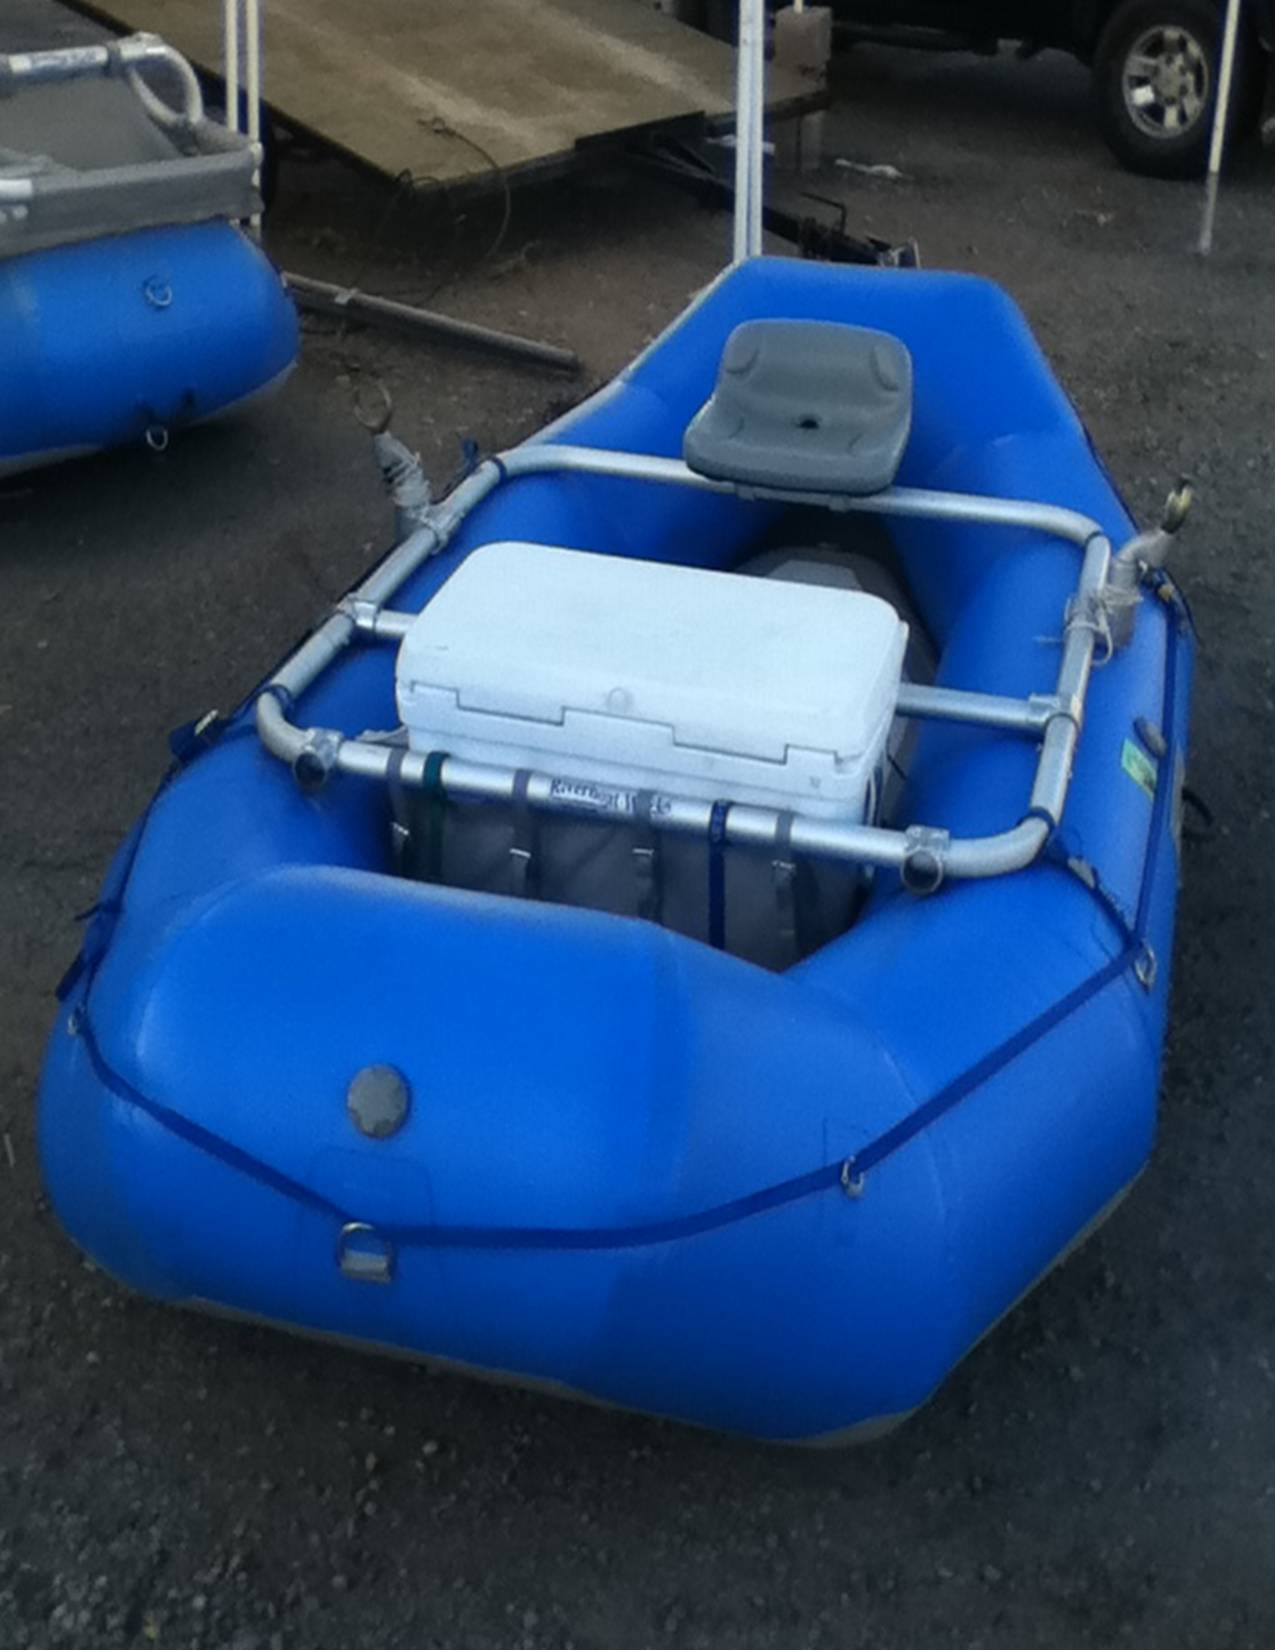 Small Fishing Raft - Tributary 9 5, MiniMax Neo or Other